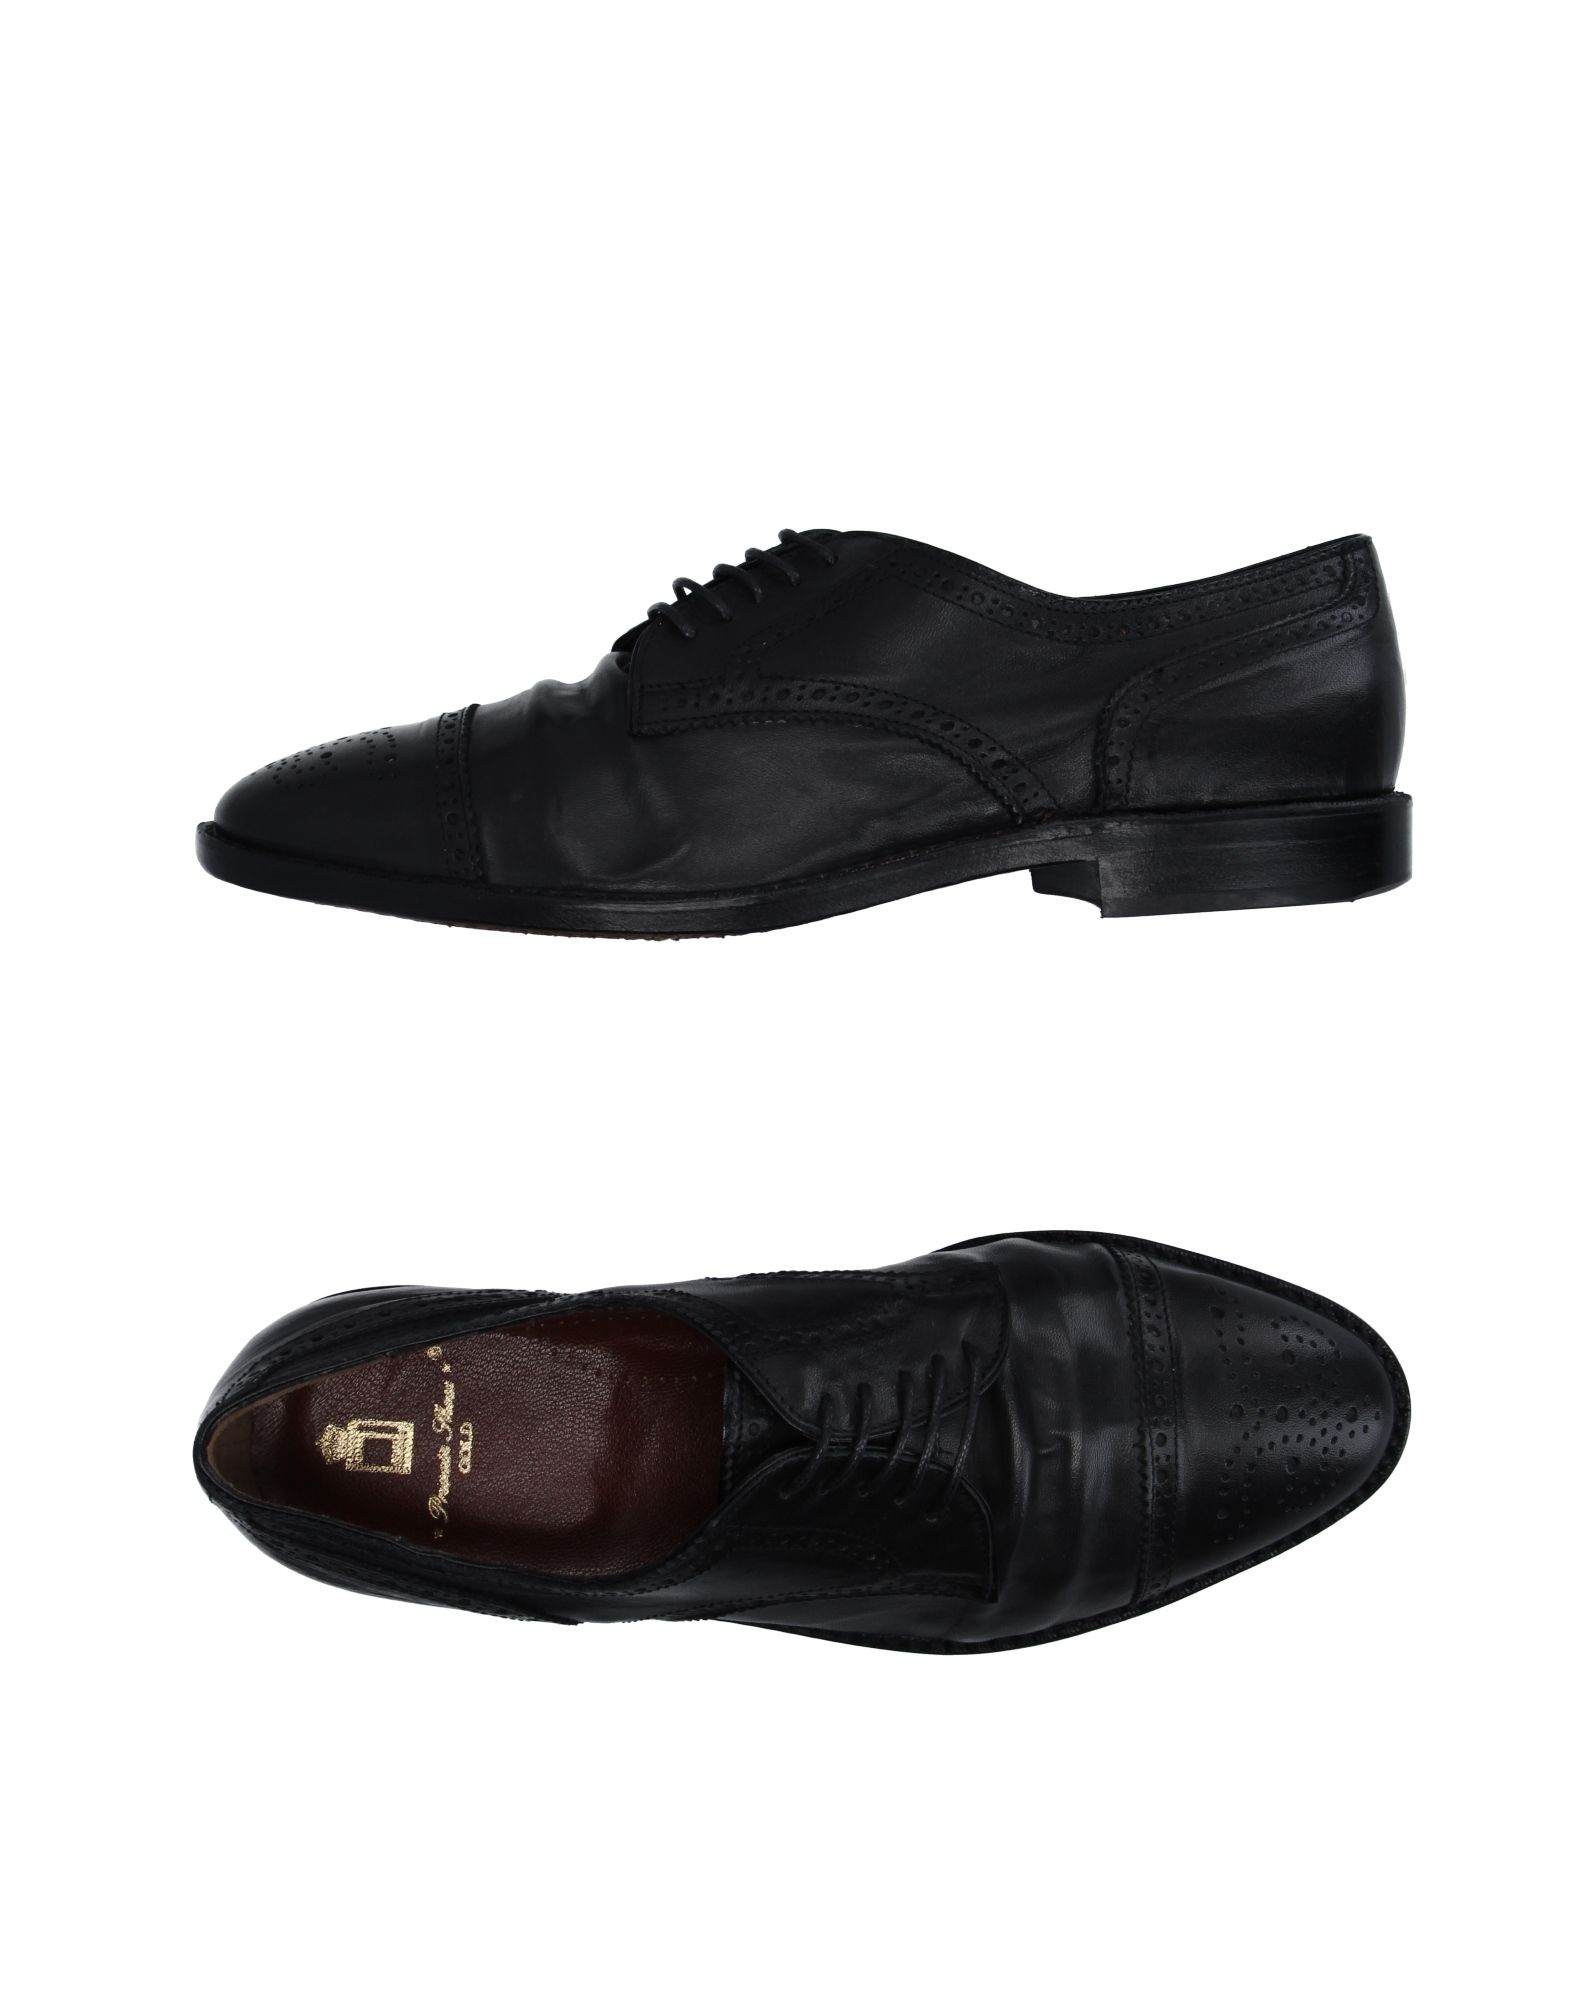 PRIVATE SHOES by GOLDEN GOOSE Обувь на шнурках private shoes by golden goose мокасины